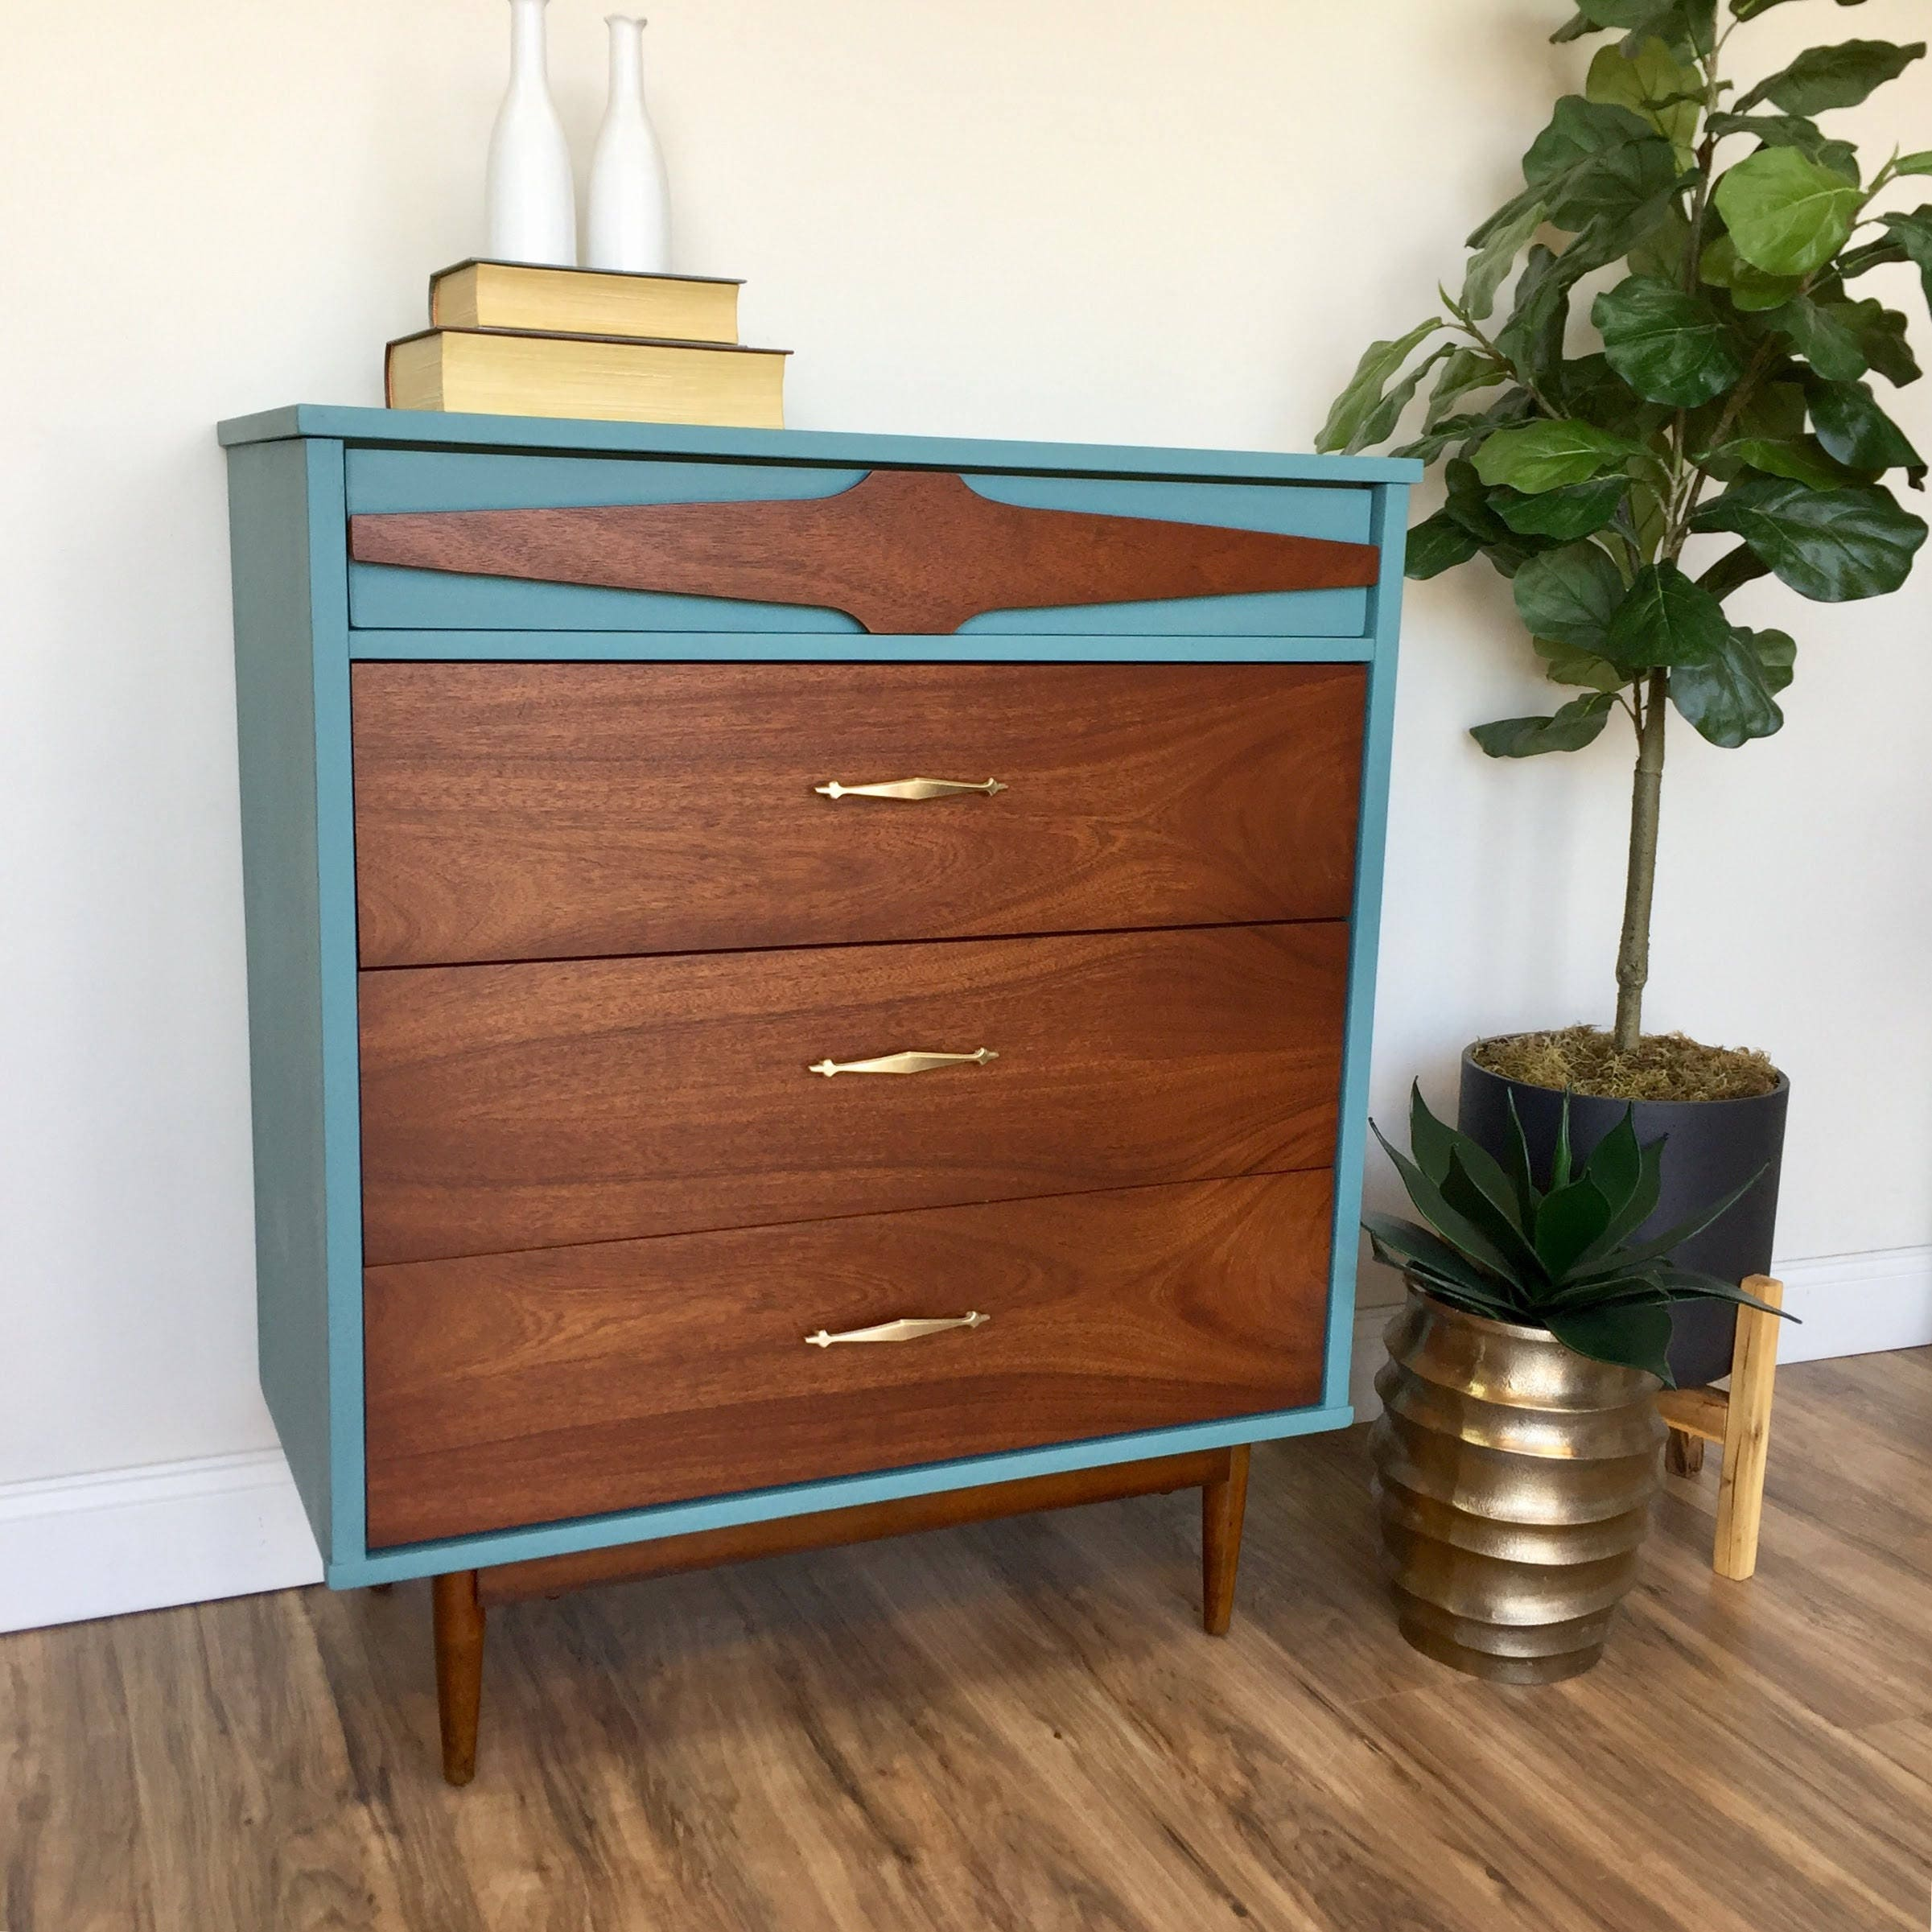 Teal Dresser   Mid Century Modern   Vintage Chest Of Drawers   Painted  Furniture   Bedroom Drawers   60s Furniture   4 Drawer Chest   MCM